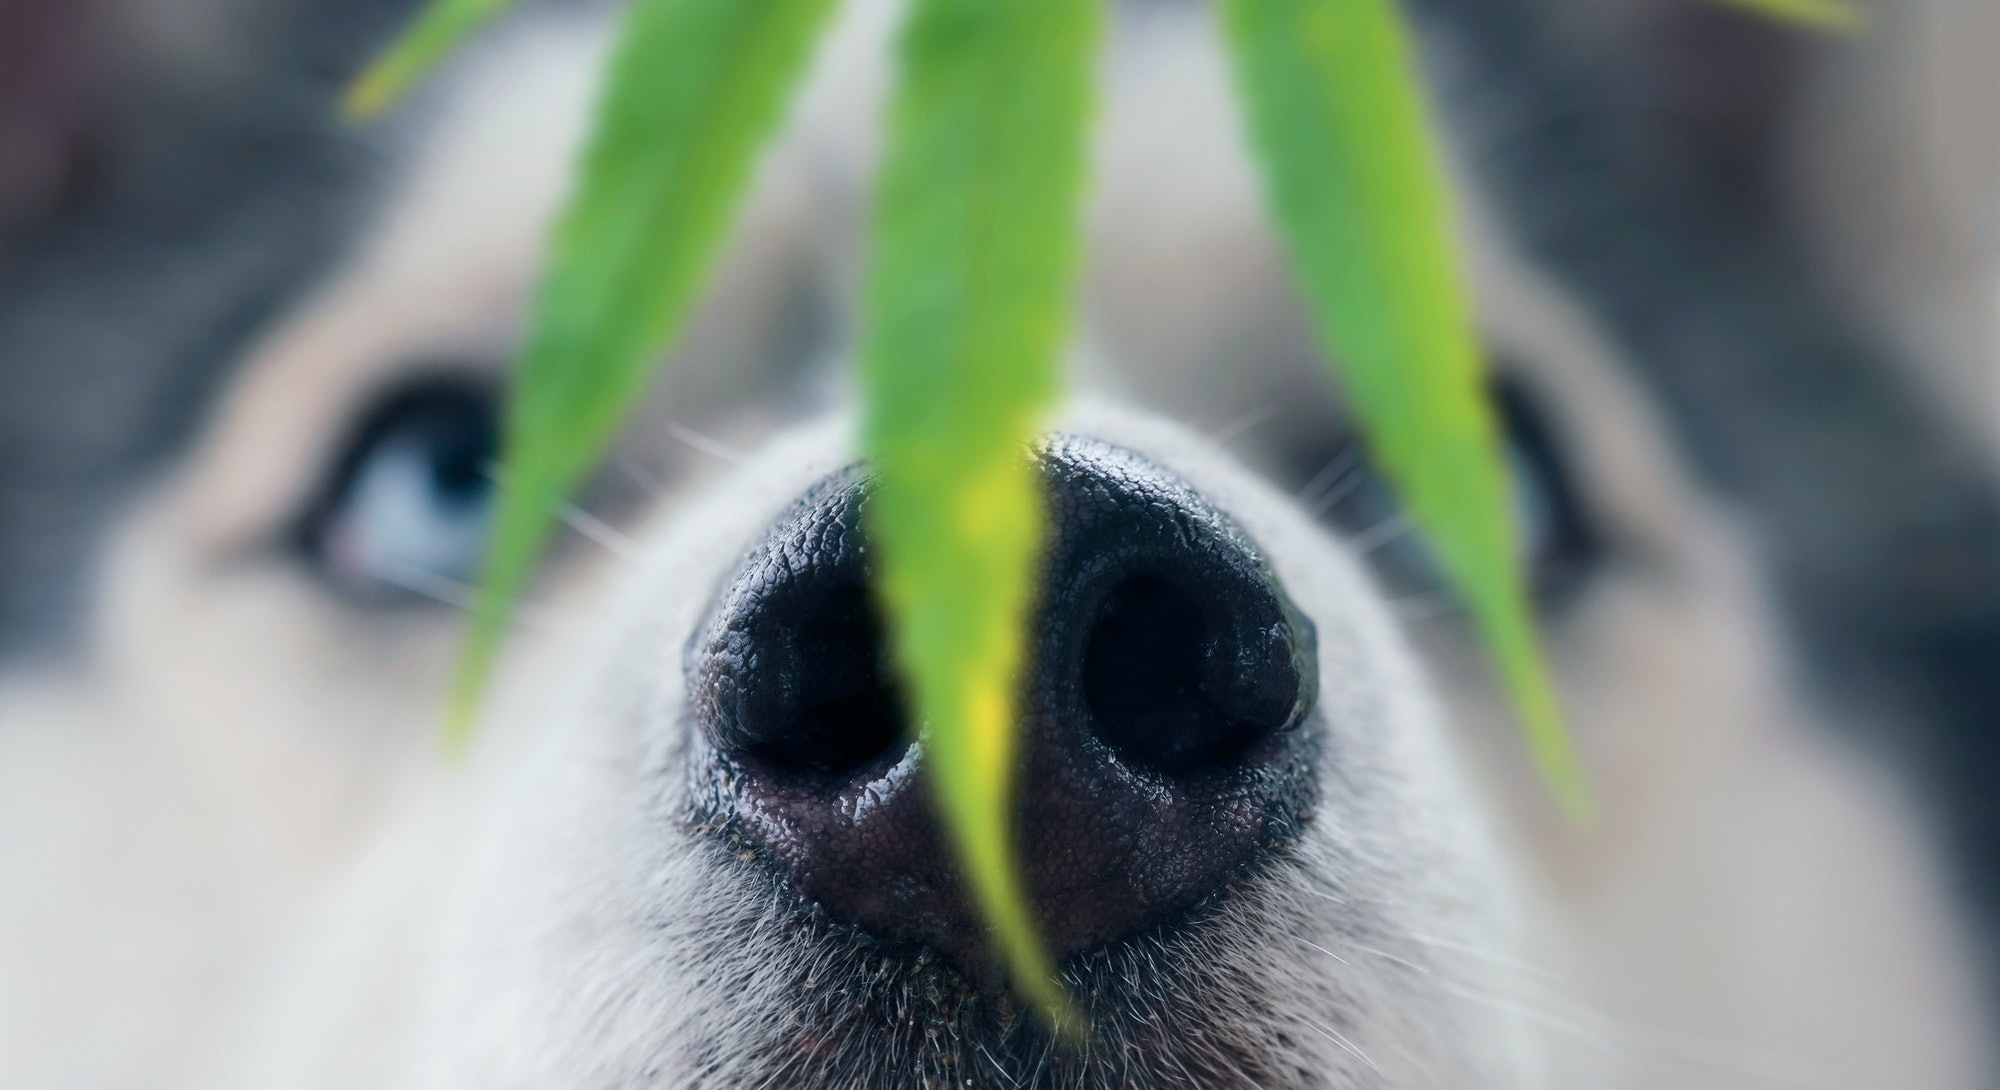 Husky dog sniffing a leaf of marijuana